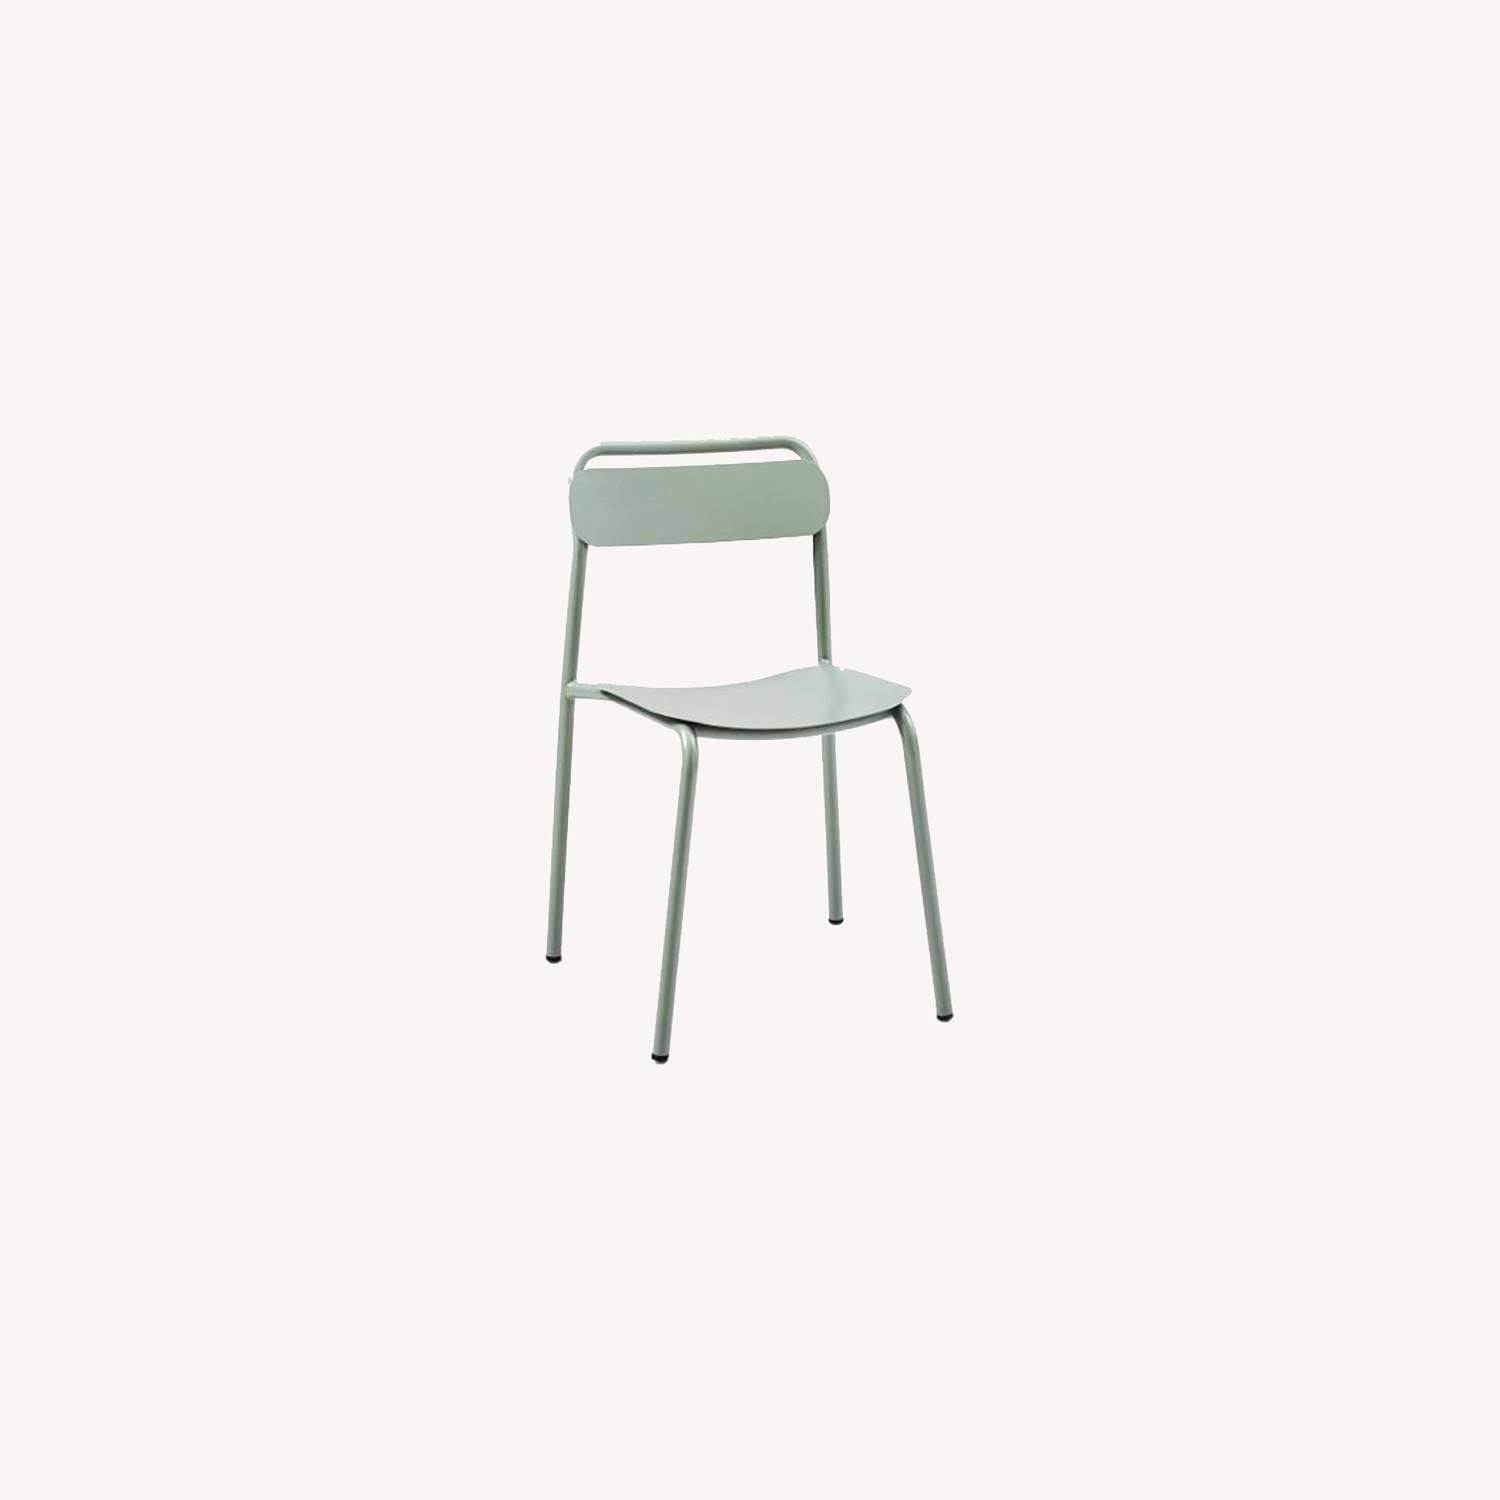 West Elm Outdoor Metal Stacking Chair (Set of 2) - image-0